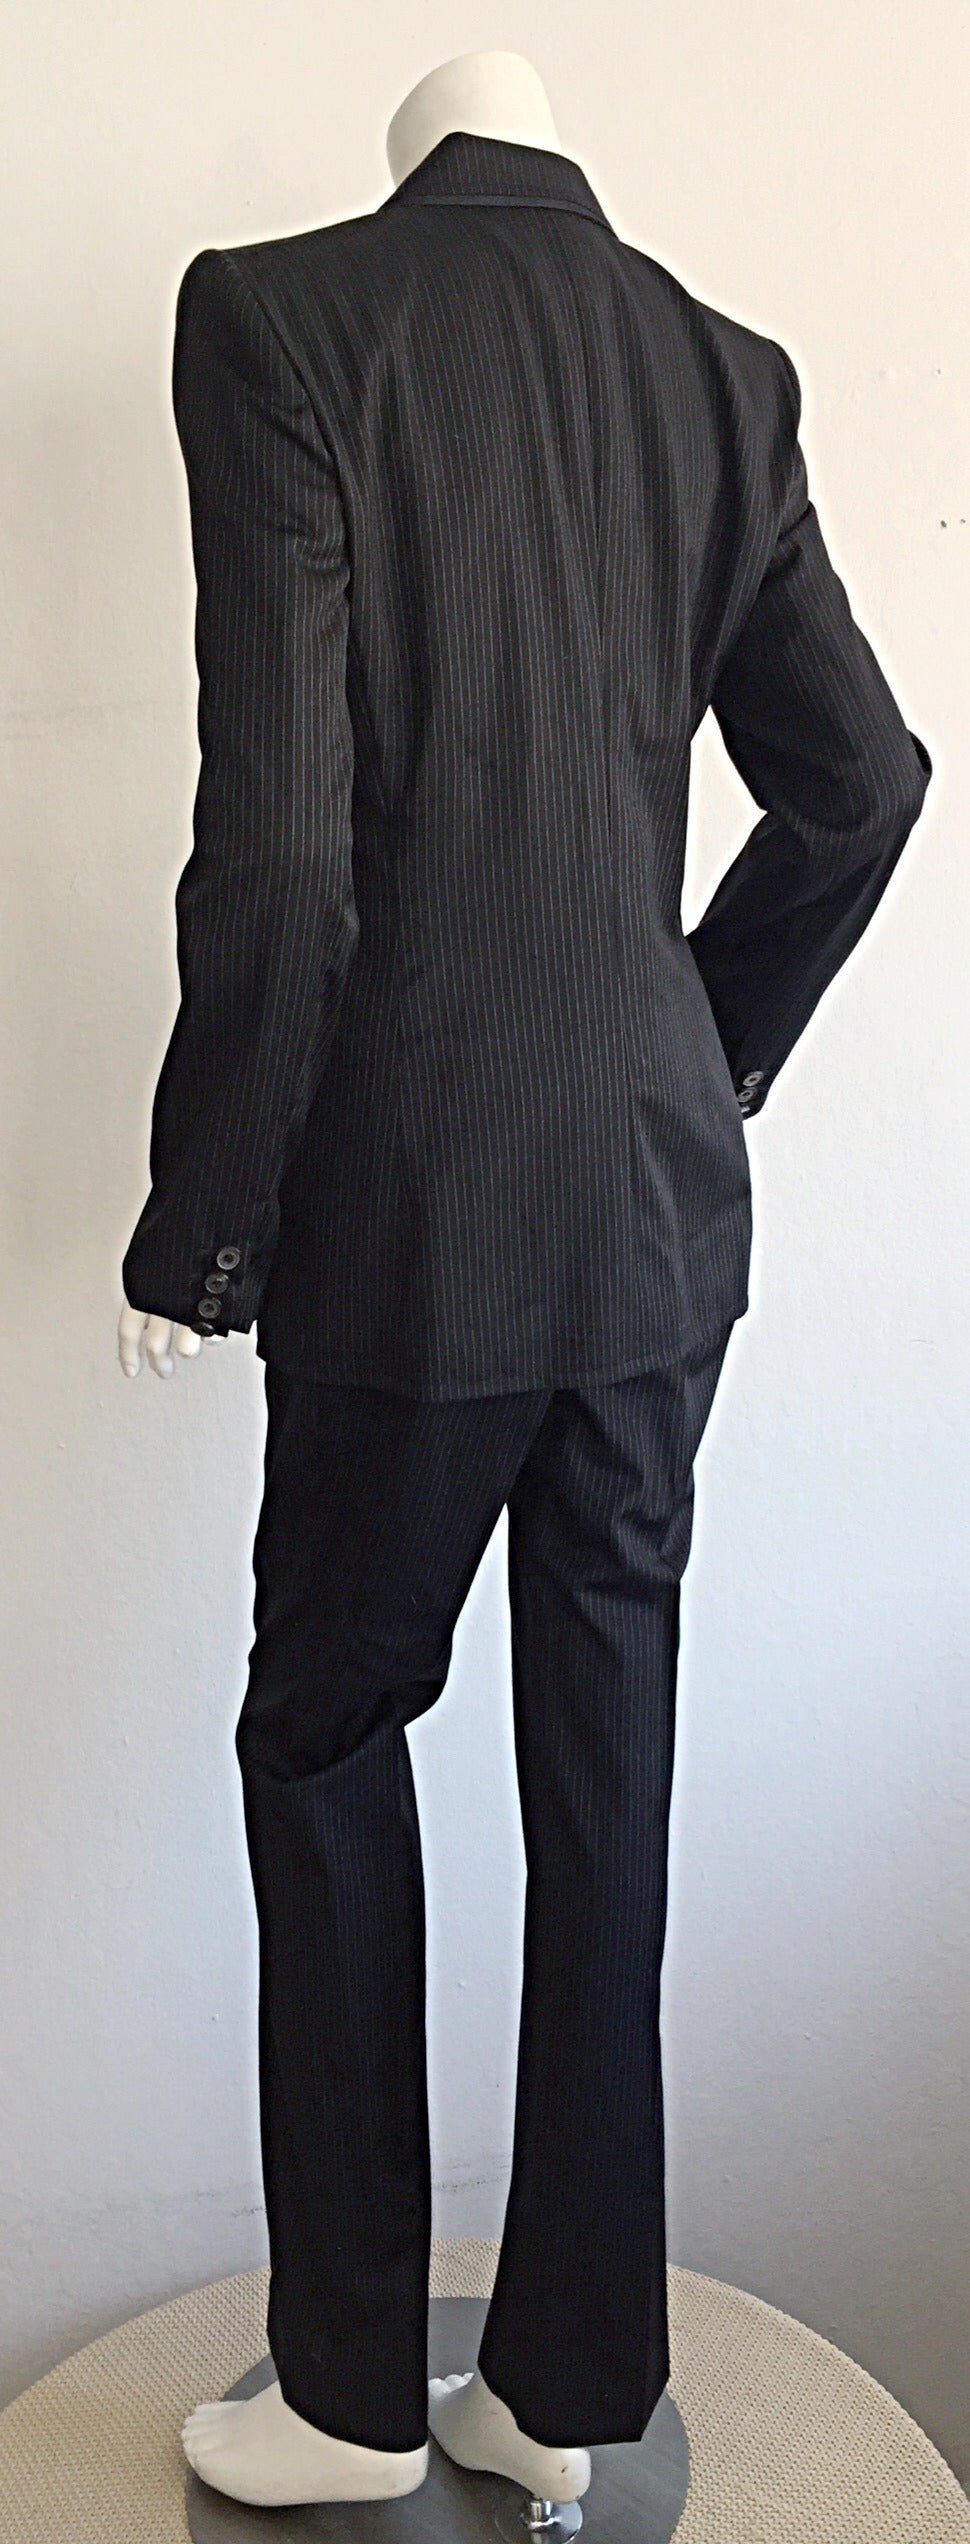 Tom Ford for Yves Saint Laurent Black + White Pinstripe Le Smoking Trouser Suit For Sale 1